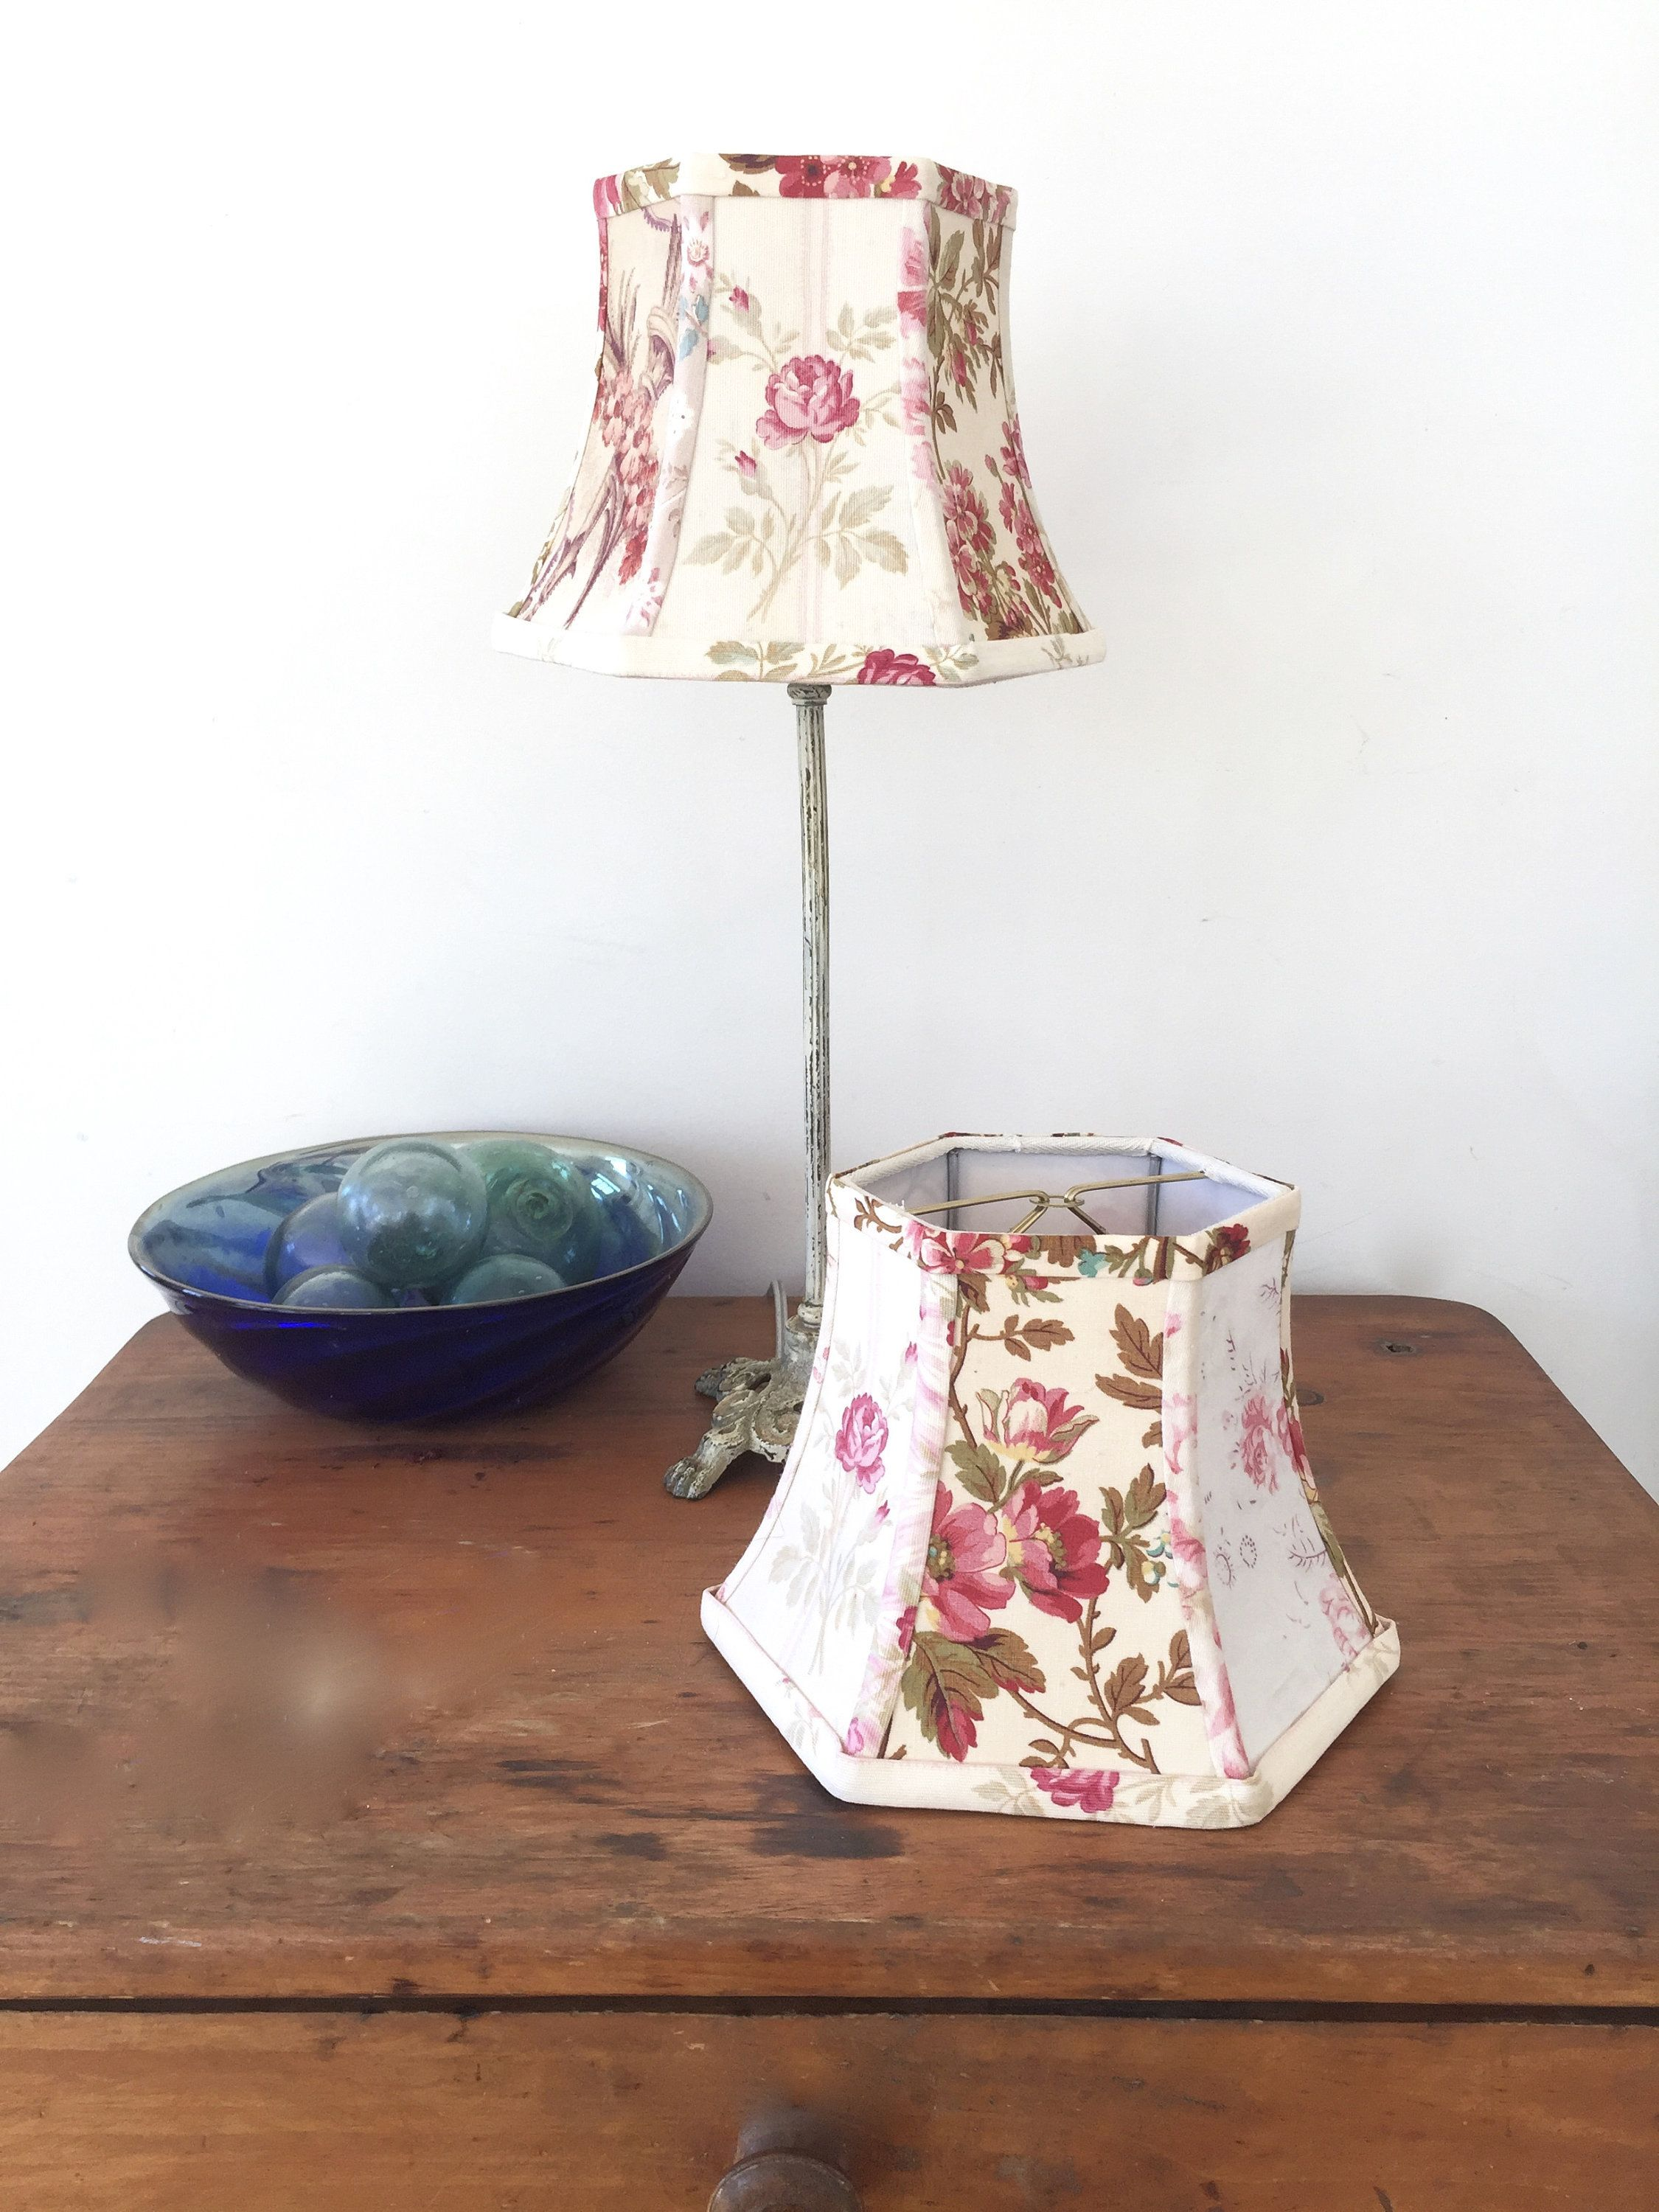 French Fabric Lamp Shade Floral Lampshade 5x8x6 Hex Bell Clip Top Cottage Style Handmade Vintage Fabrics Shab In 2020 Floral Lampshade Lamp Shade French Fabric